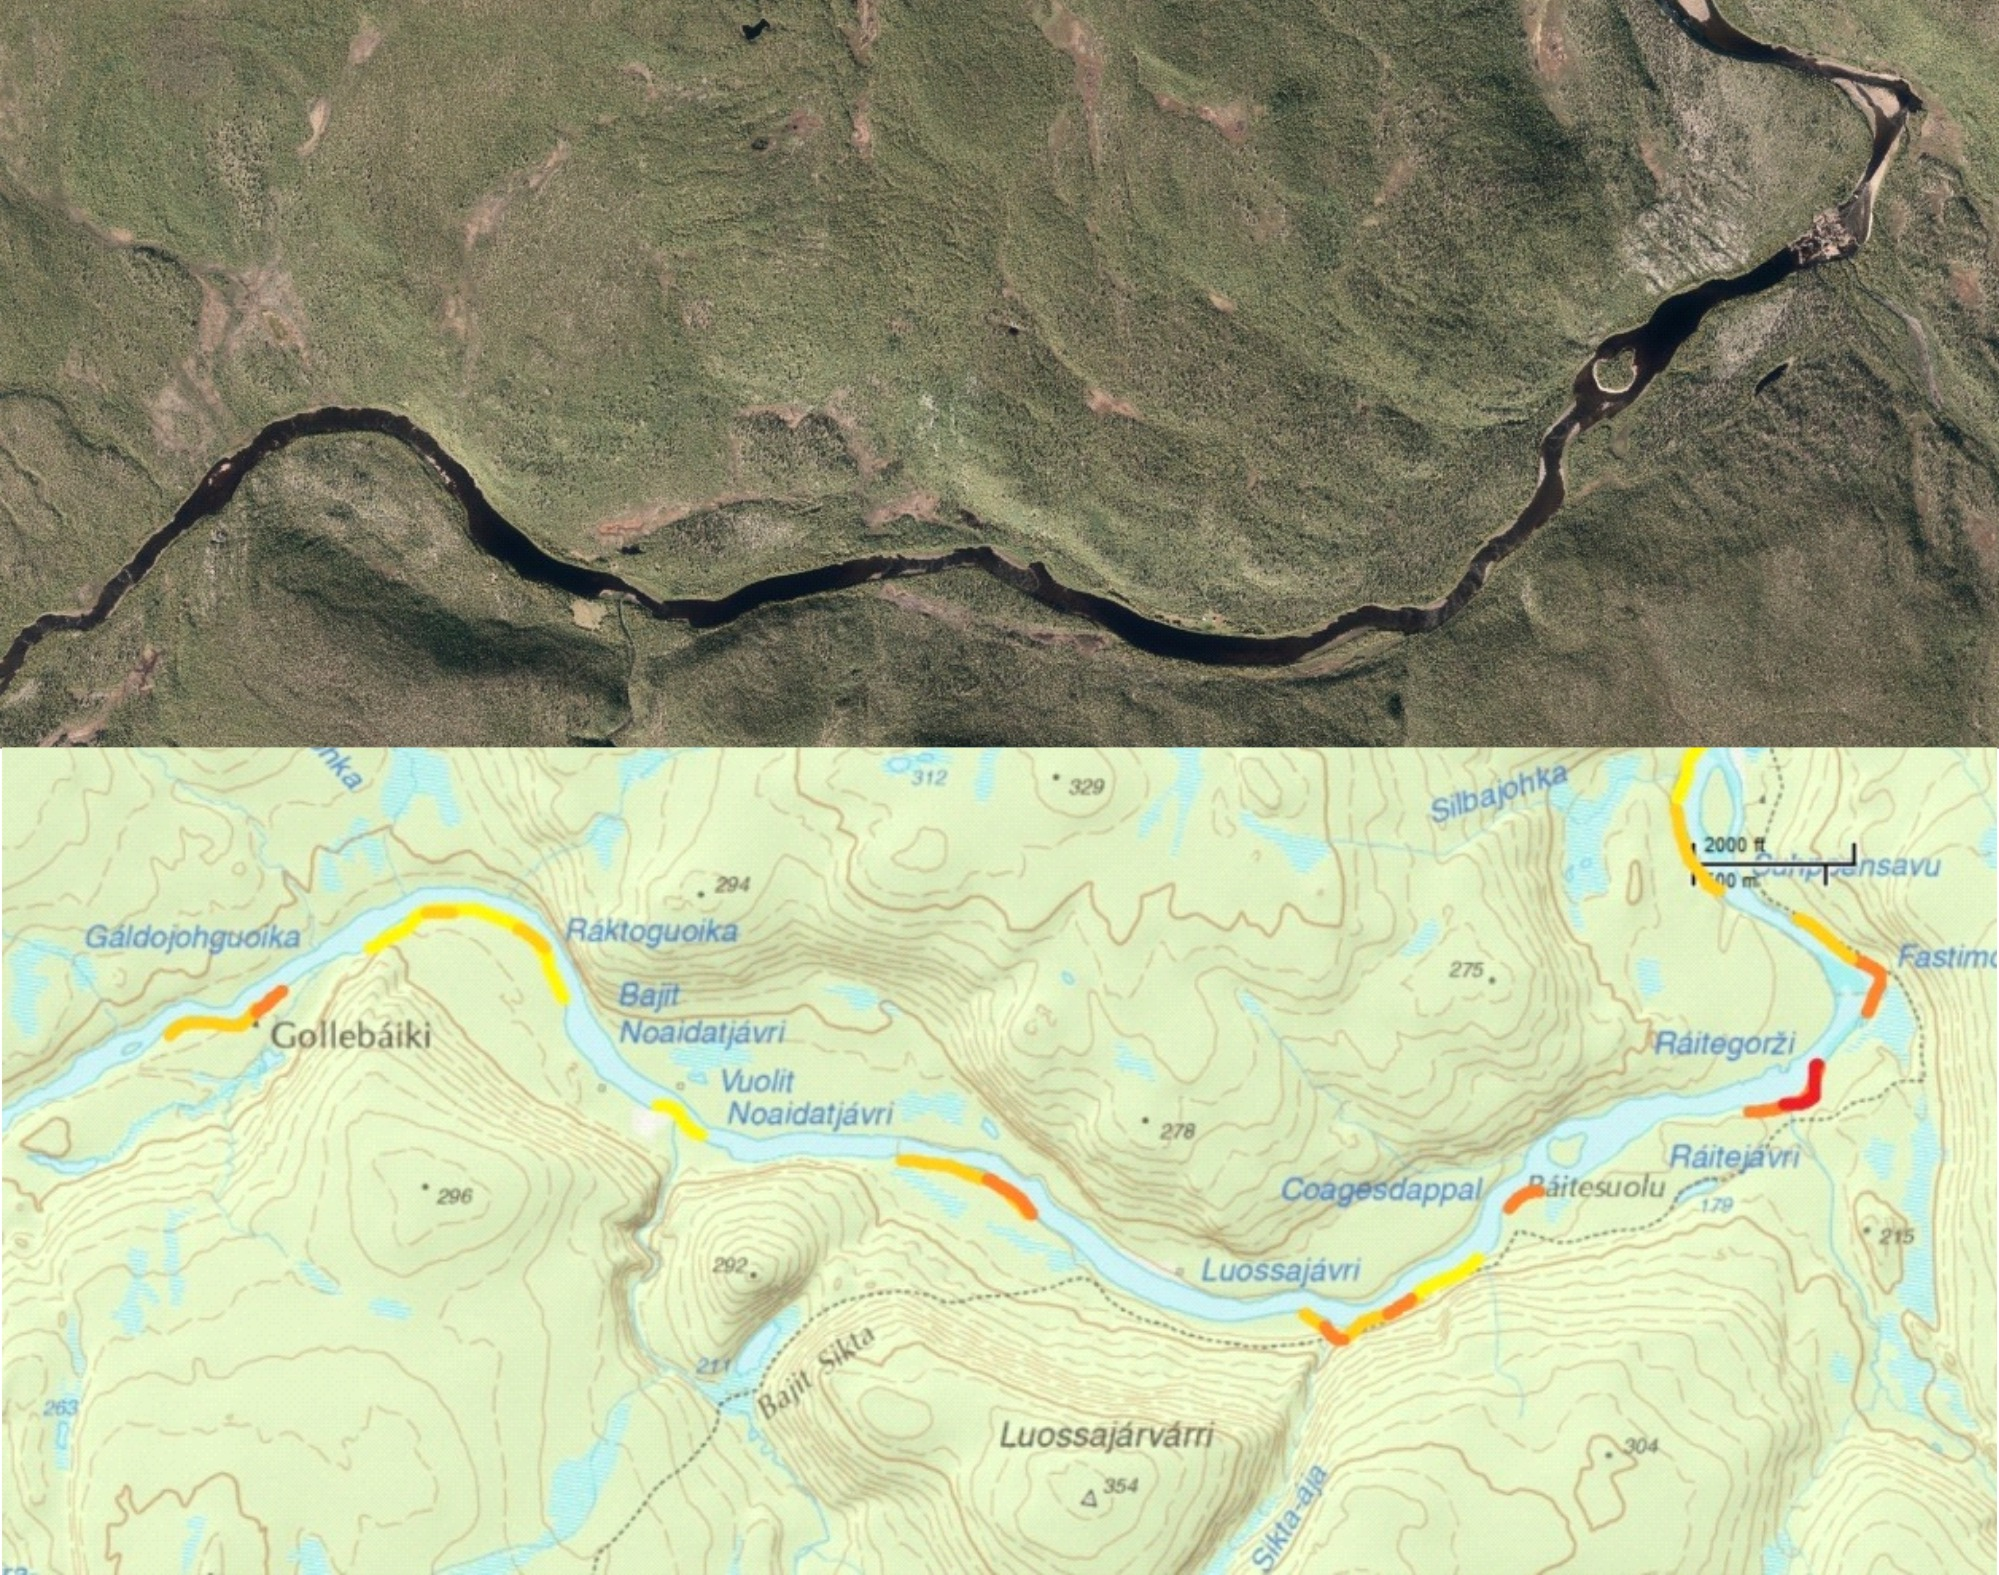 Figure 26: River map for the Karasjohka river in Norway's Finnmarksvidda, a river I paddled in september 2012 during the last weeks of my Scandinavia traverse. This is the map I would attach to the pack on the bow of my raft while paddling.